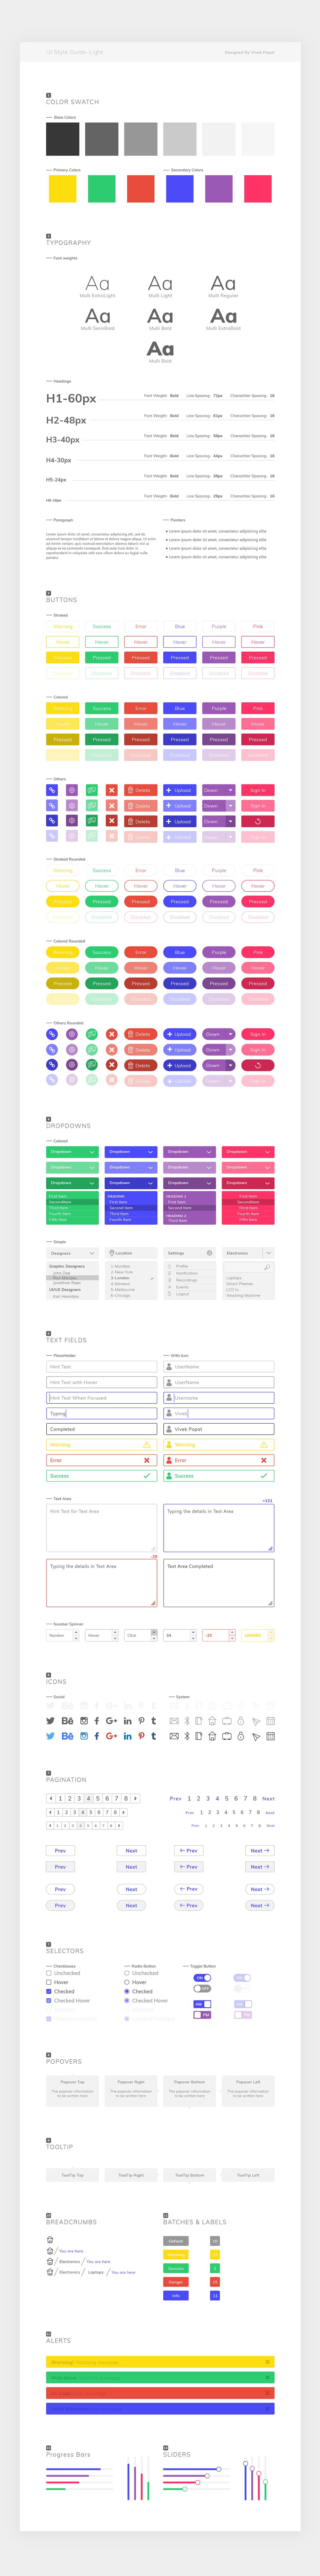 Free Adobe XD UI Style Guide